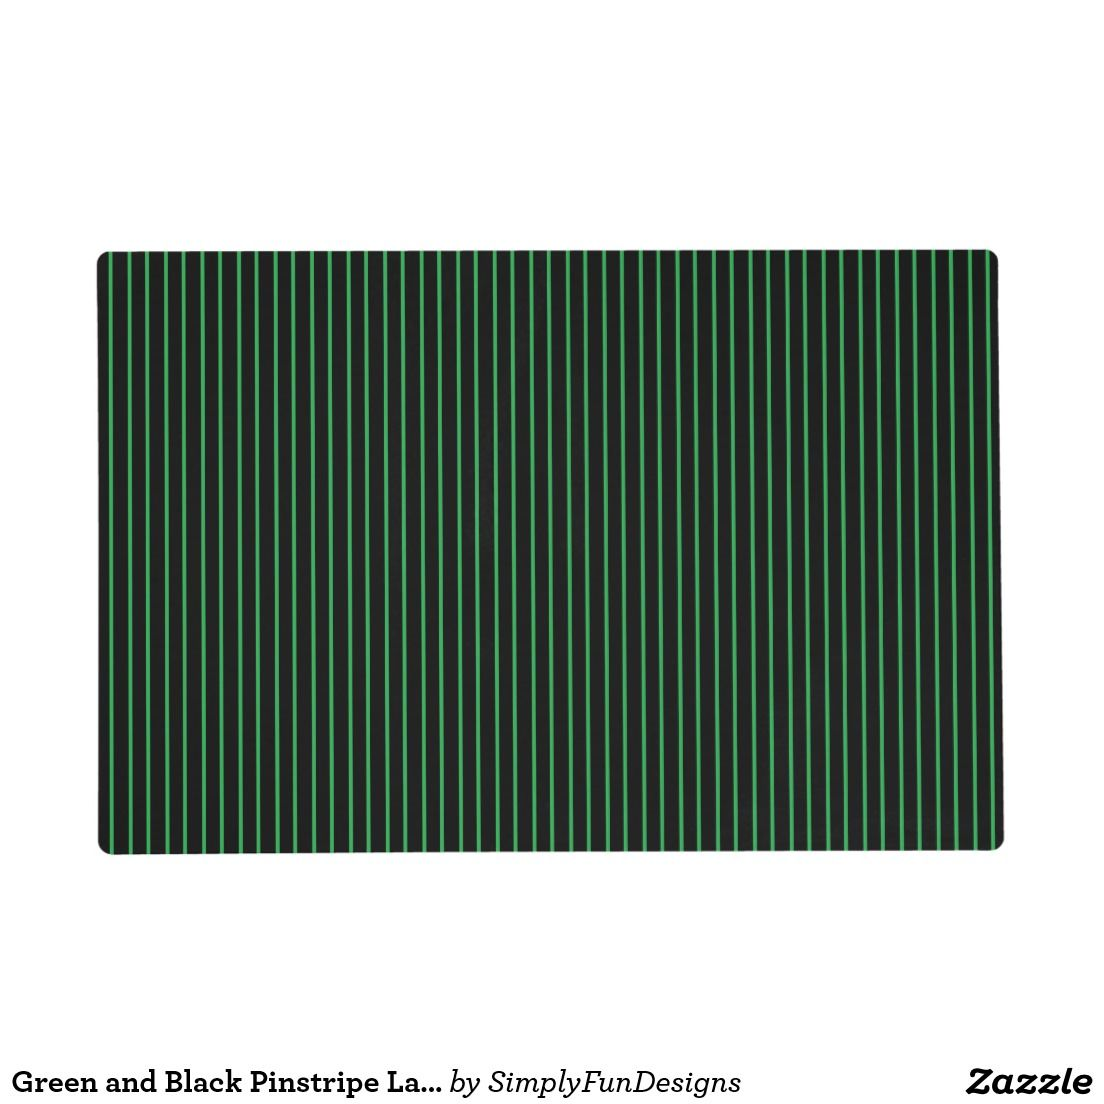 Green and Black Pinstripe Laminated Placemat